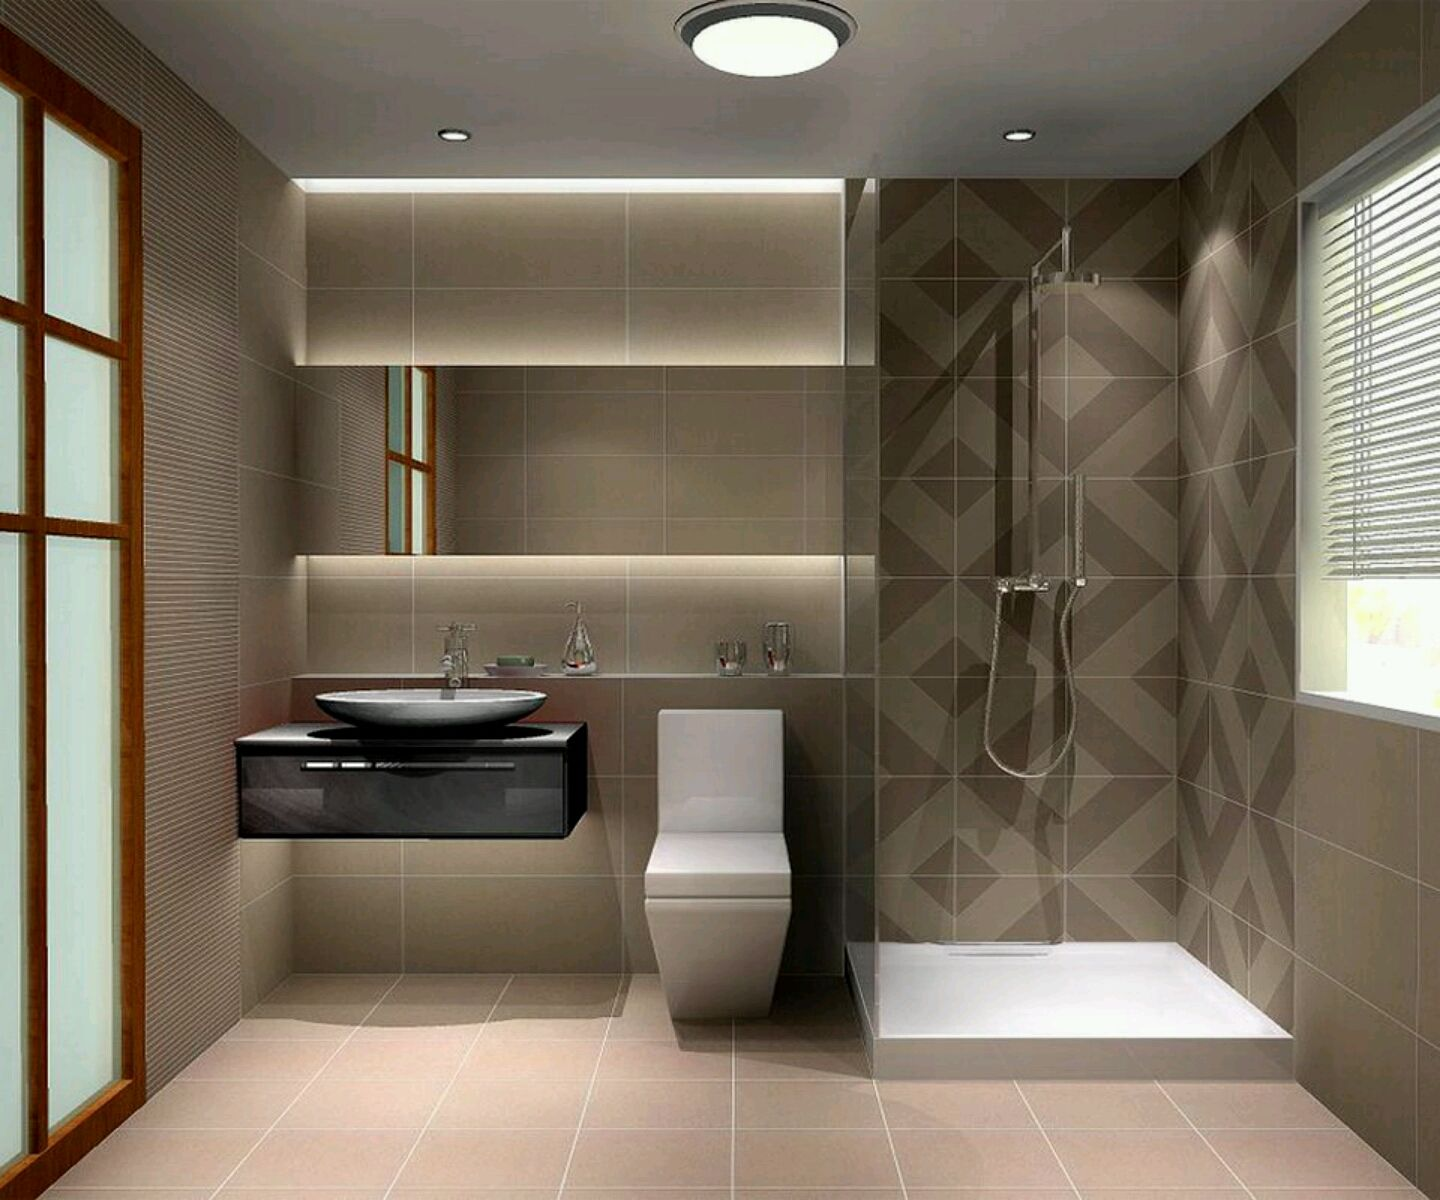 Cozy Bathroom Design With Soft Tone Featuring Shower Room With Decorative  Wall And Modern White Toilet In Line With Floating Black Bath Vanity  Granite Sink ...